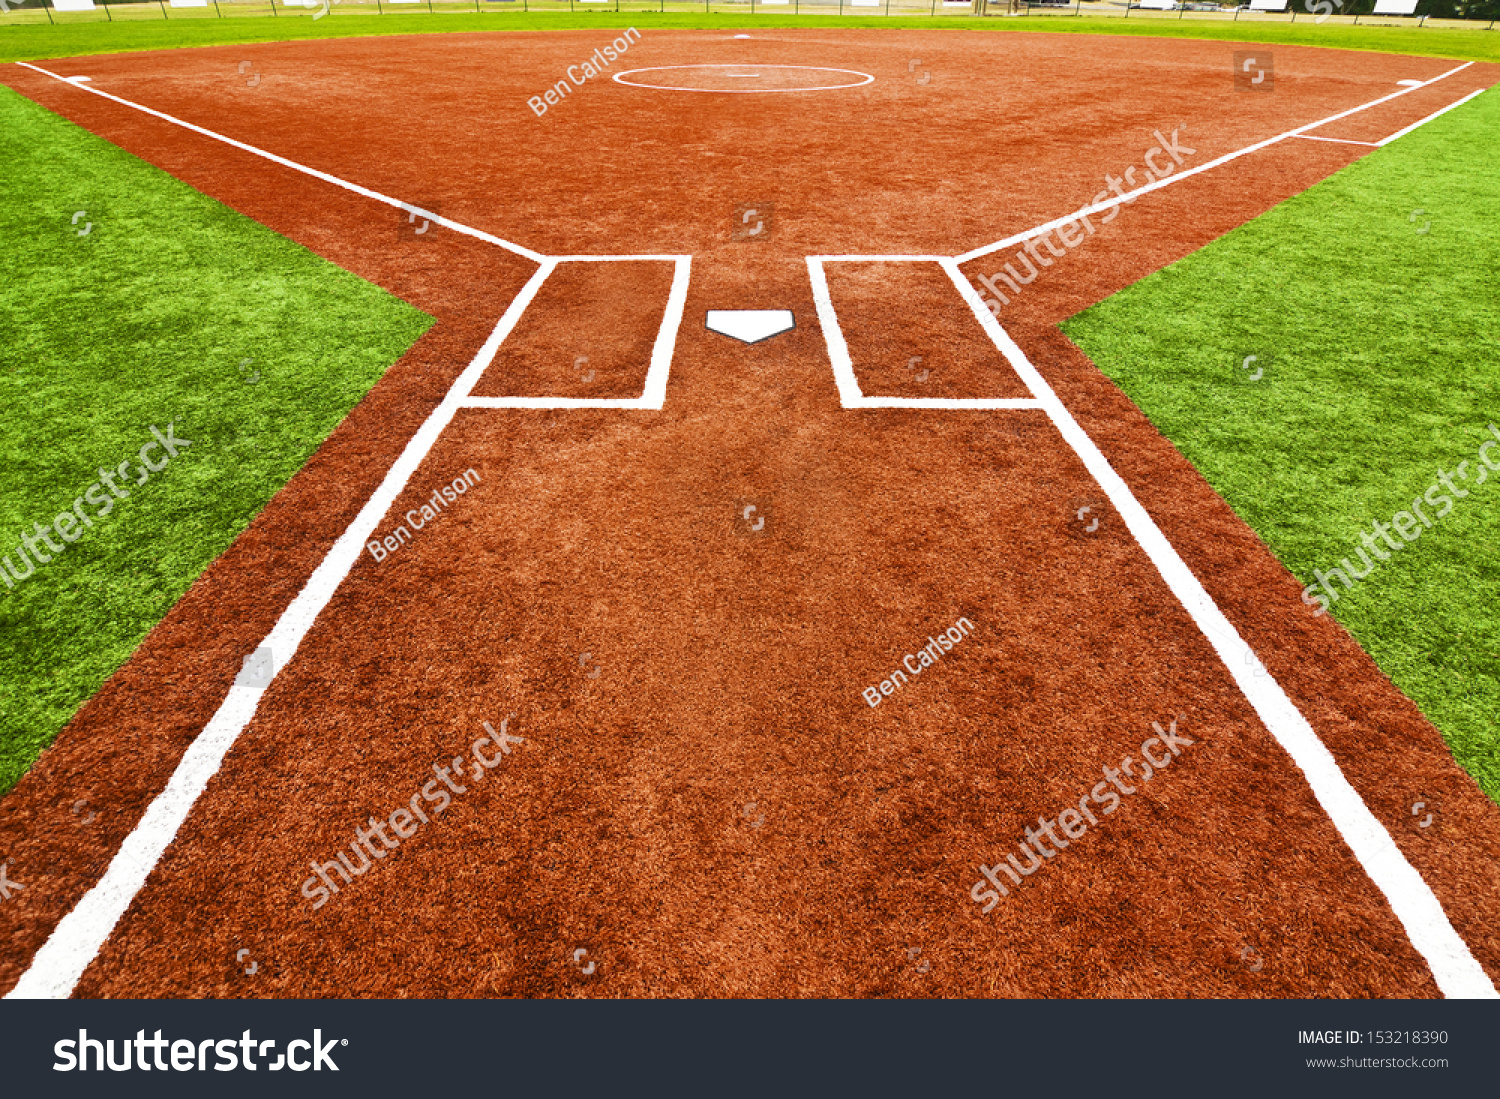 view behind home plate looking towards stock photo 153218390